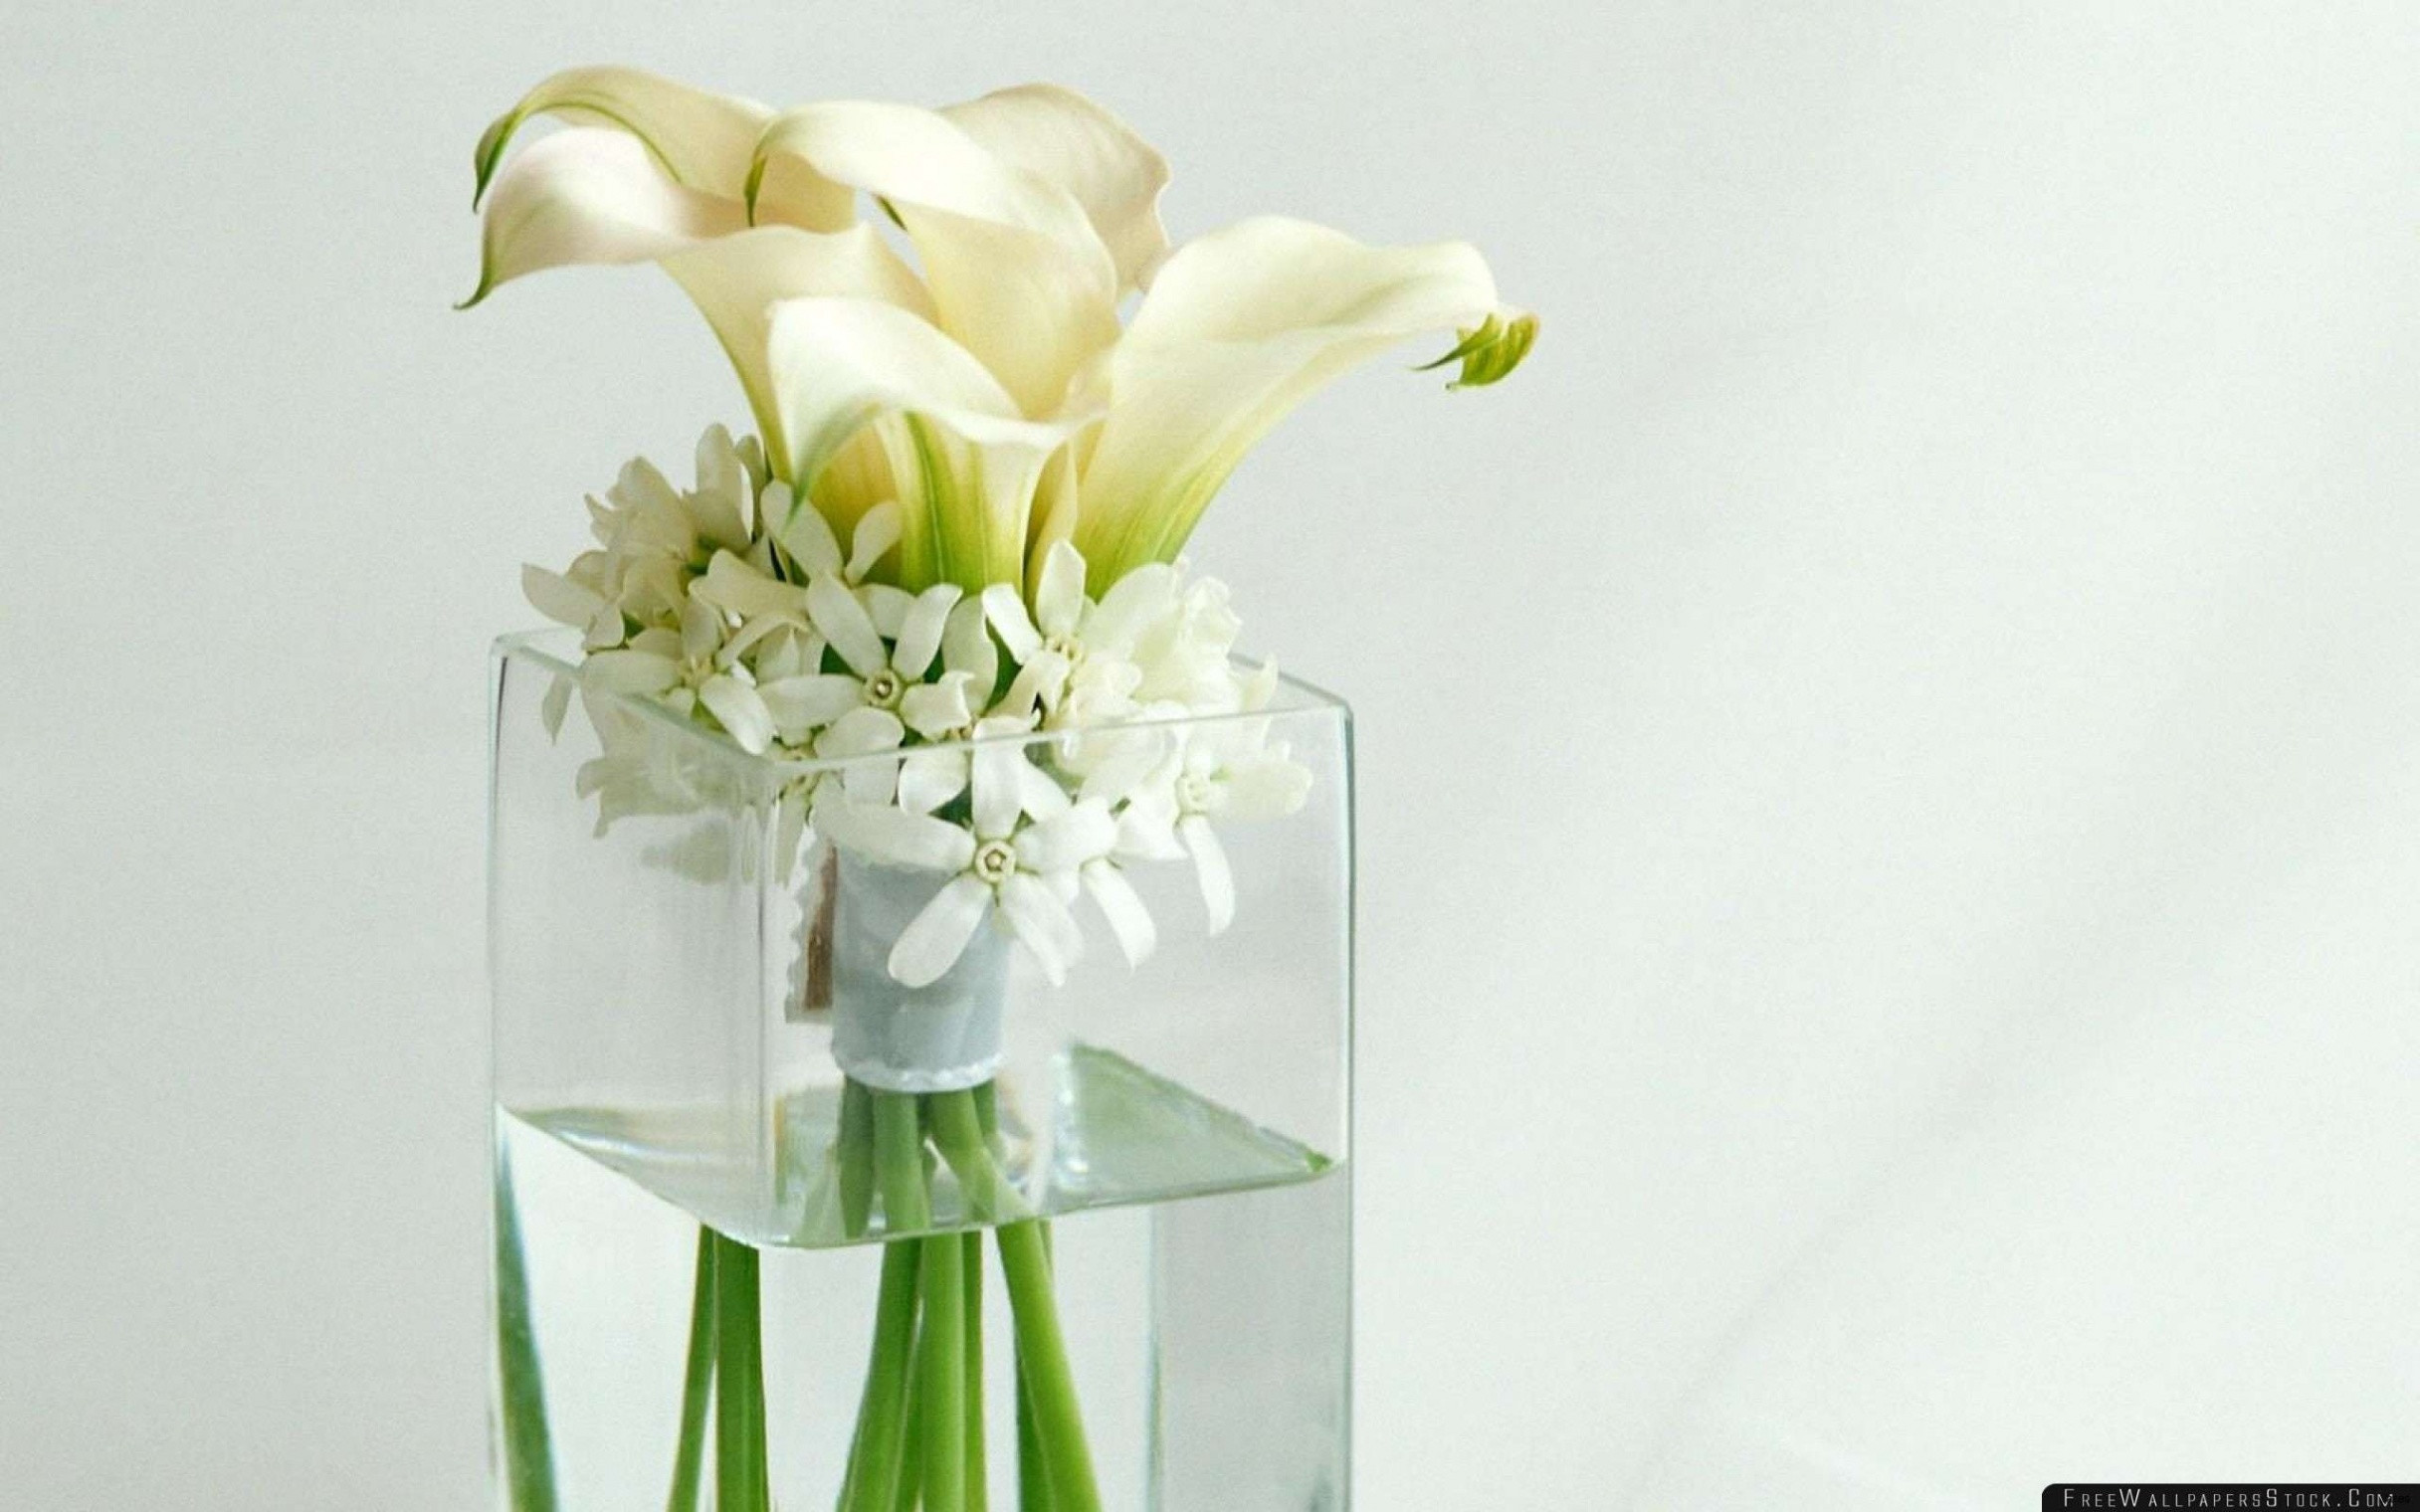 tall clear acrylic vases of h vases for flower arrangements i 0d dry inspiration picture design in image de tall vase centerpiece ideas vases flowers in water 0d artificial vase blanc